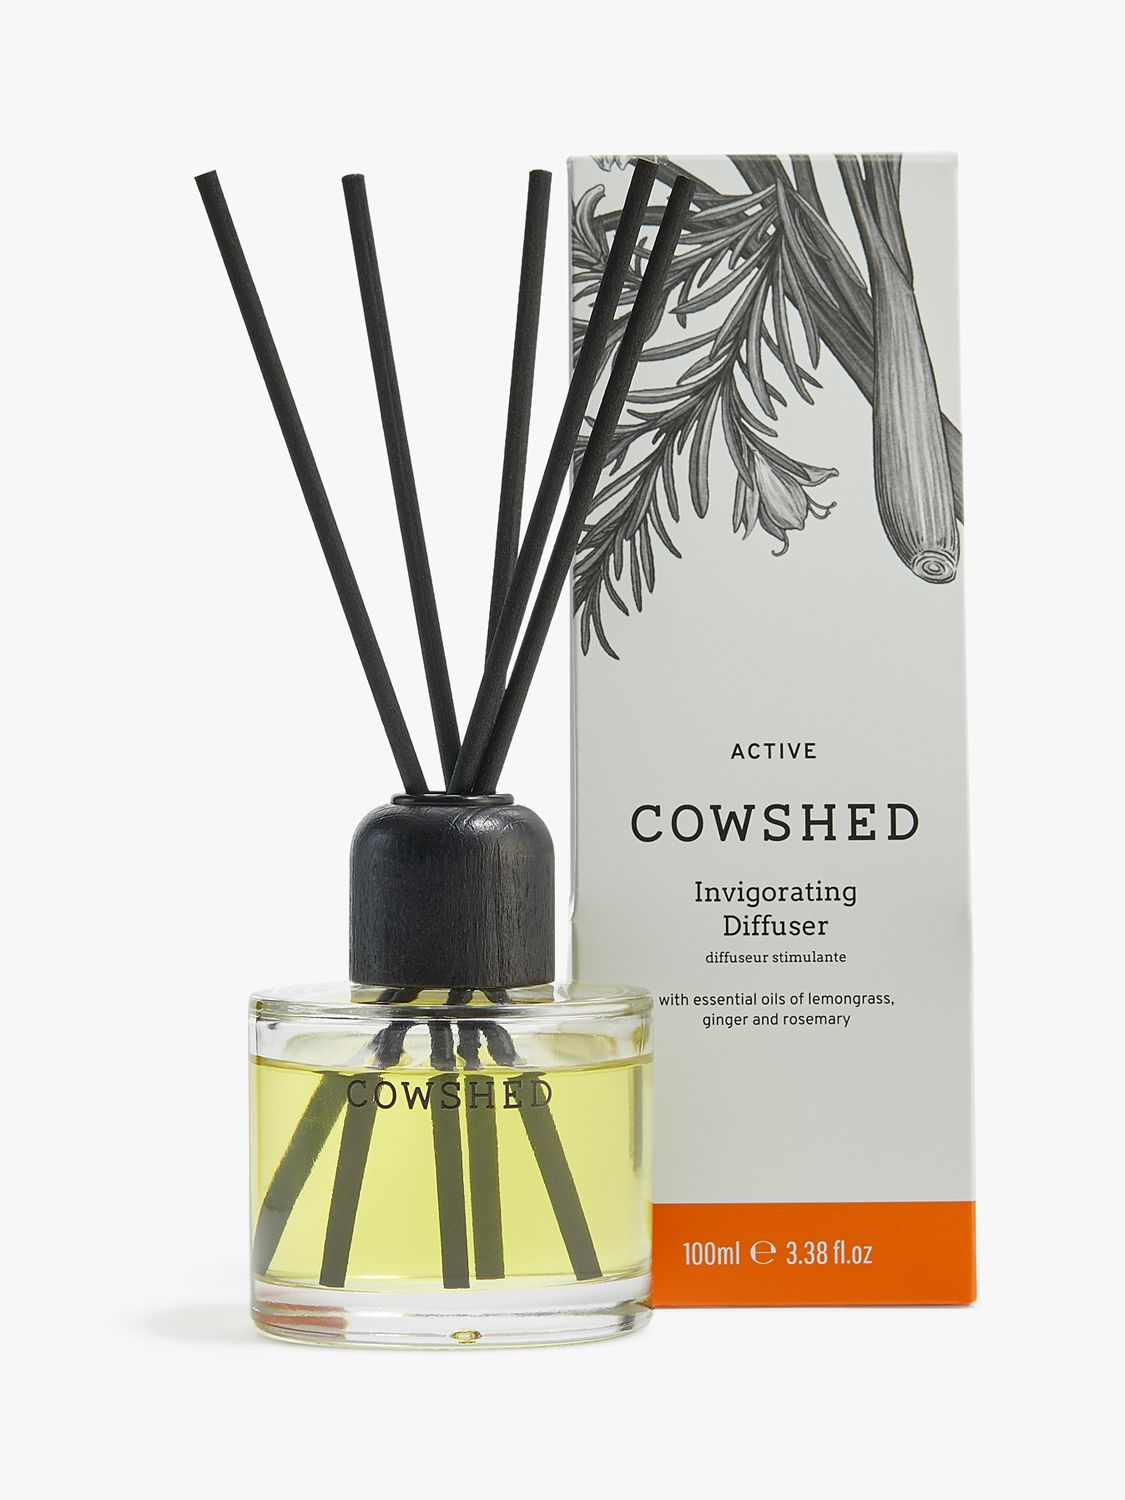 Cowshed Cowshed Active Invigorating Diffuser, 100ml